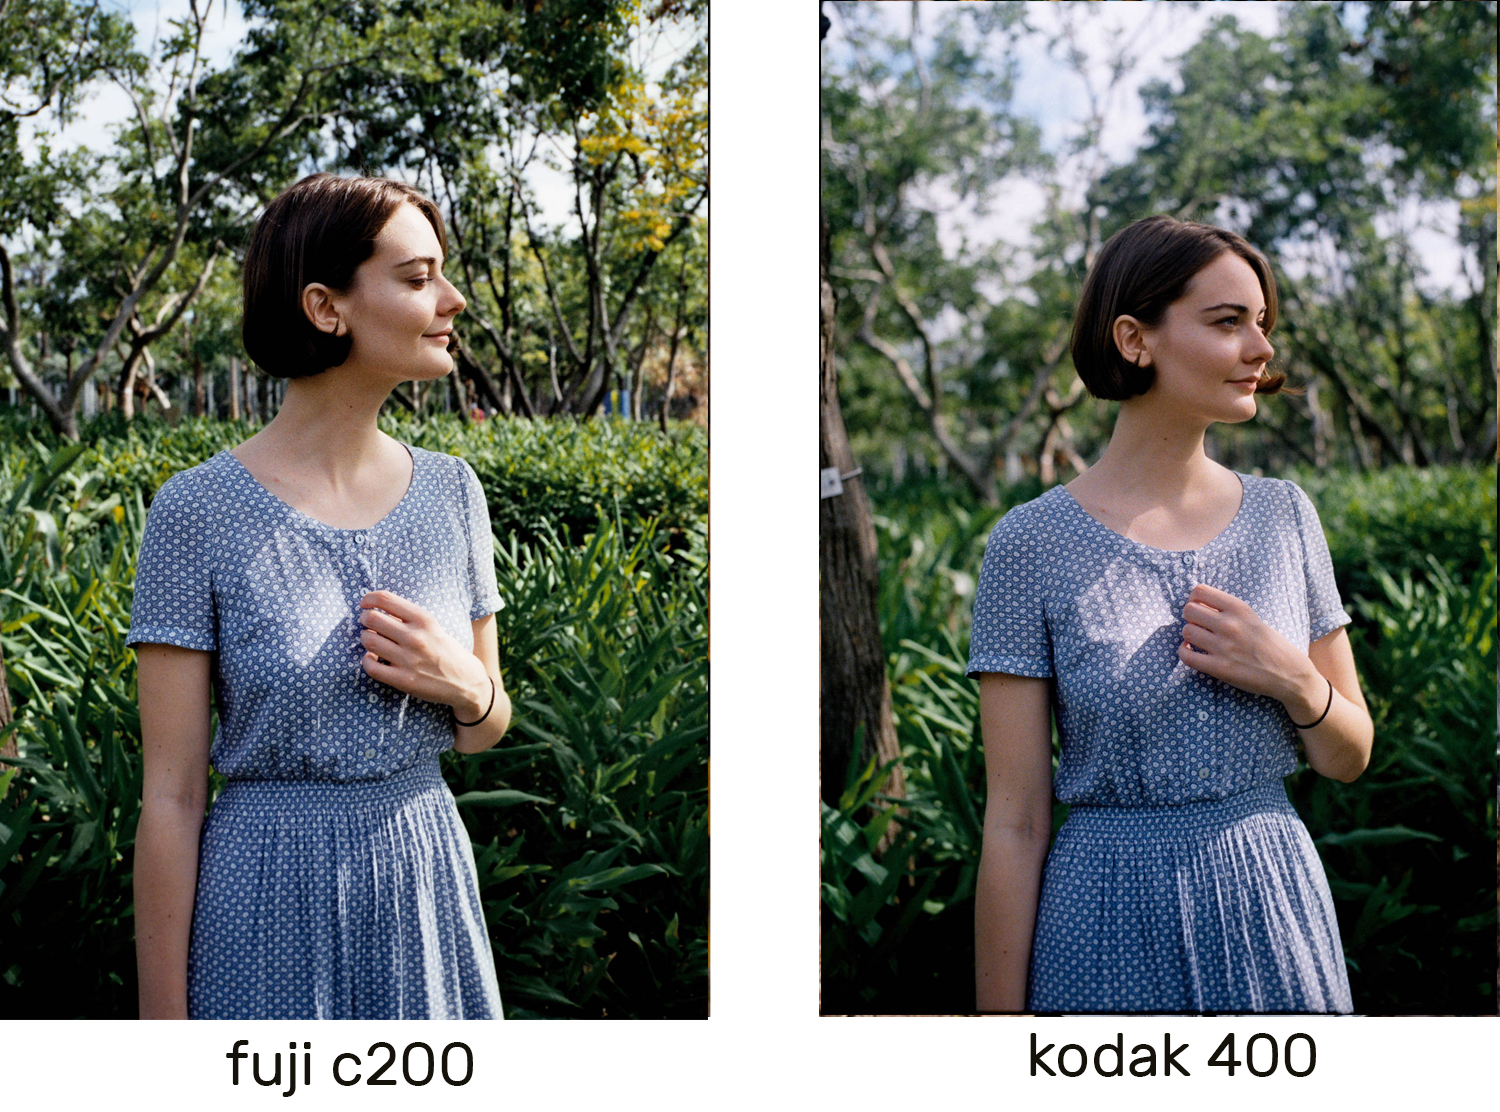 The Contax (Fuji example) tends to have a much higher depth of field at f2.8 than the Zeiss has (Kodak)